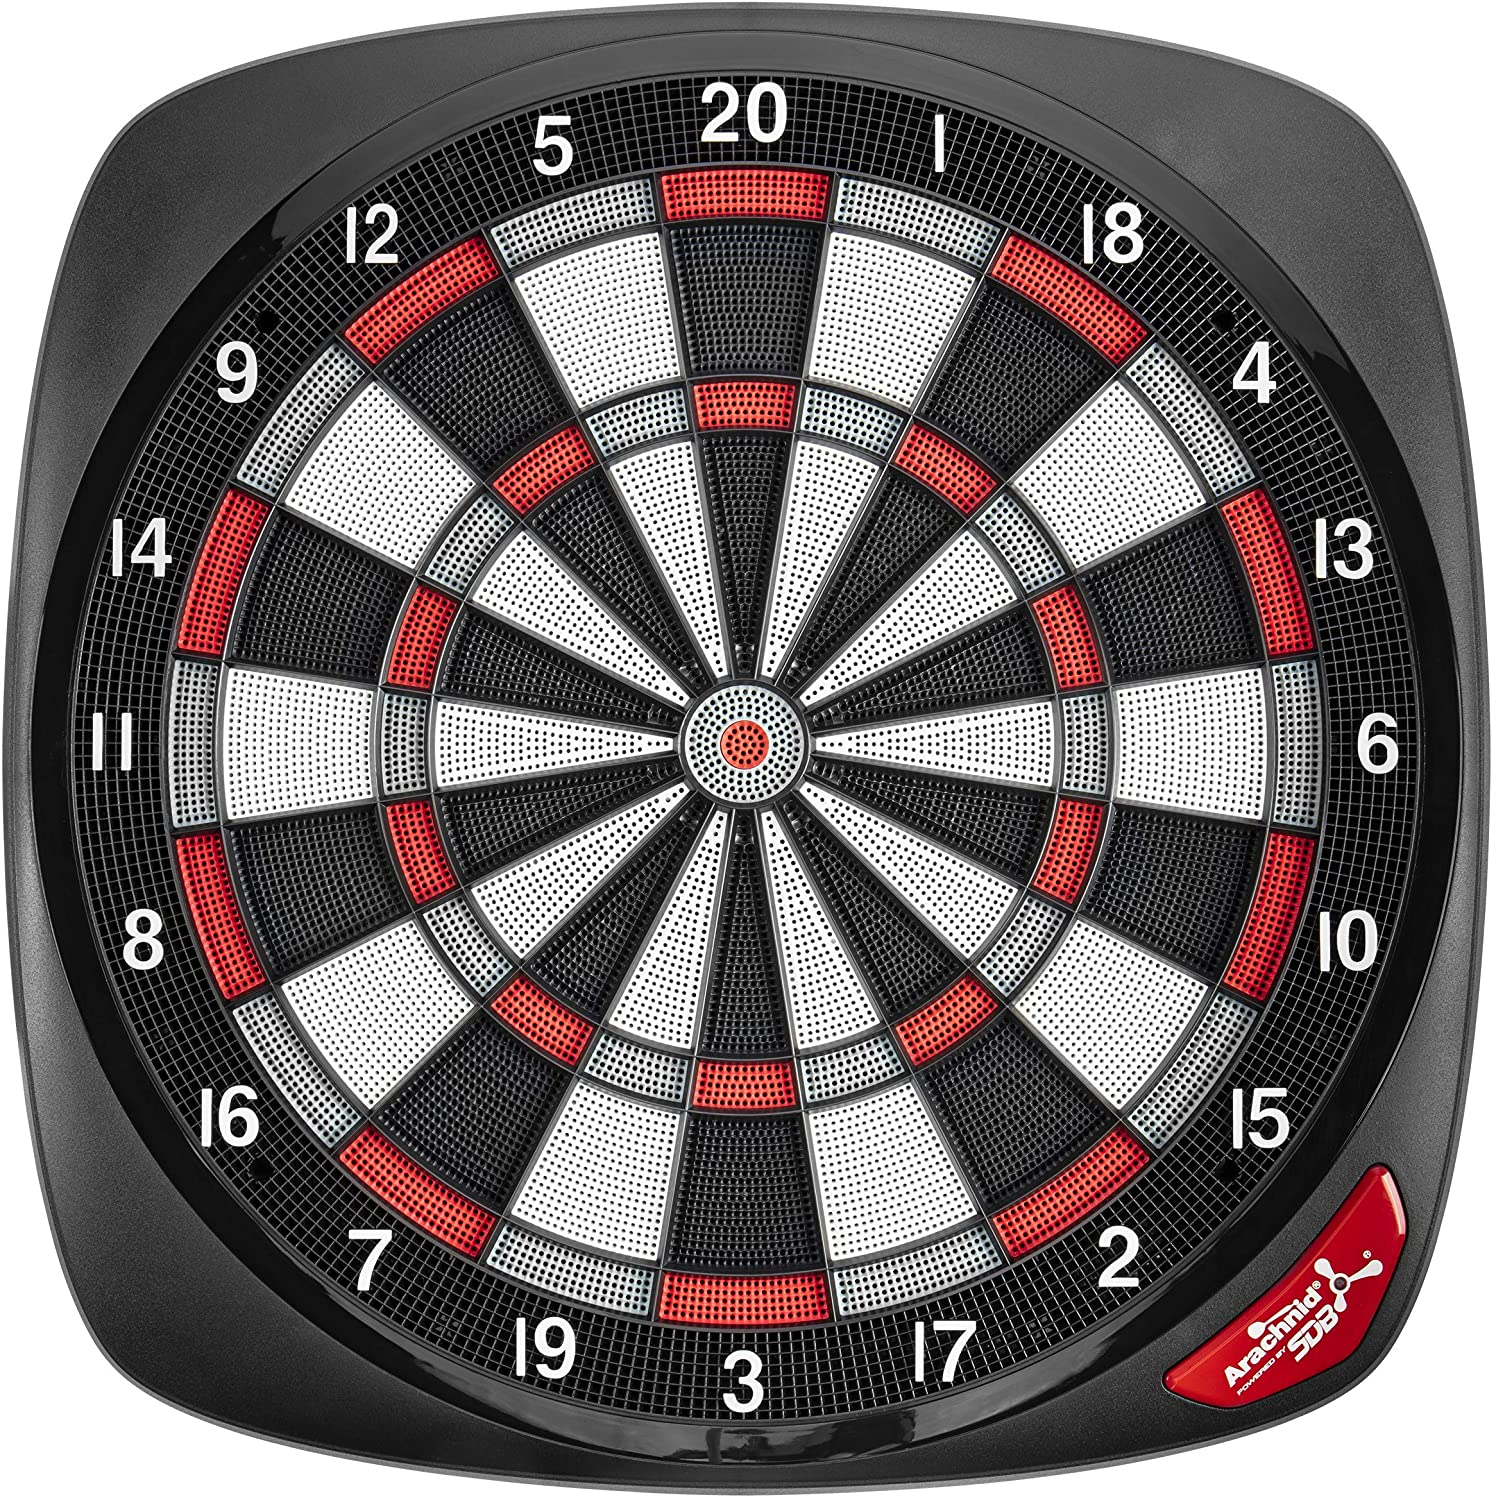 Arachnid SDB4000 Electronic Soft Tip Smart Dartboard with Online Game Play